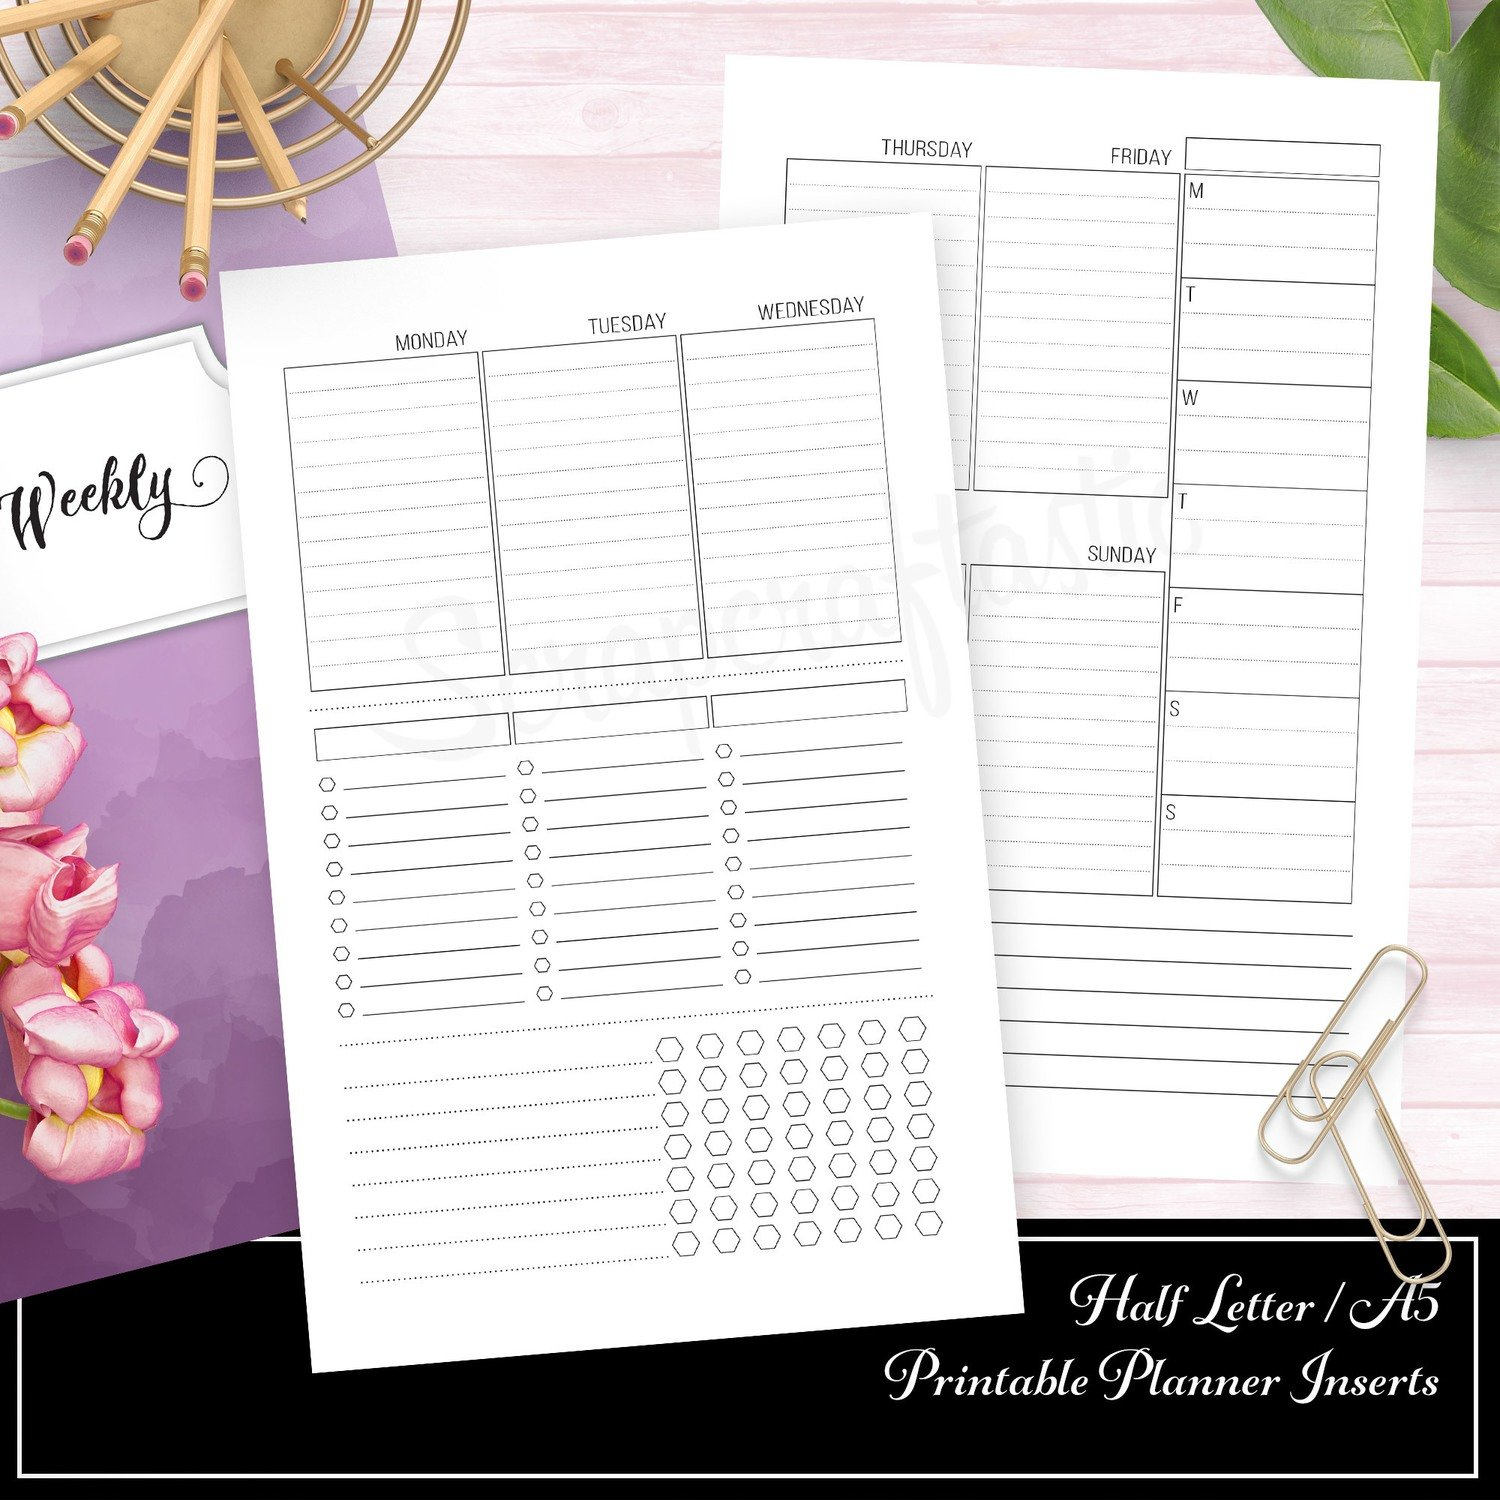 HALF LETTER A5 - Week 33 Deluxe Week On Two Pages (WO2P) Ring Binder or Traveler's Notebook Printable Planner Inserts